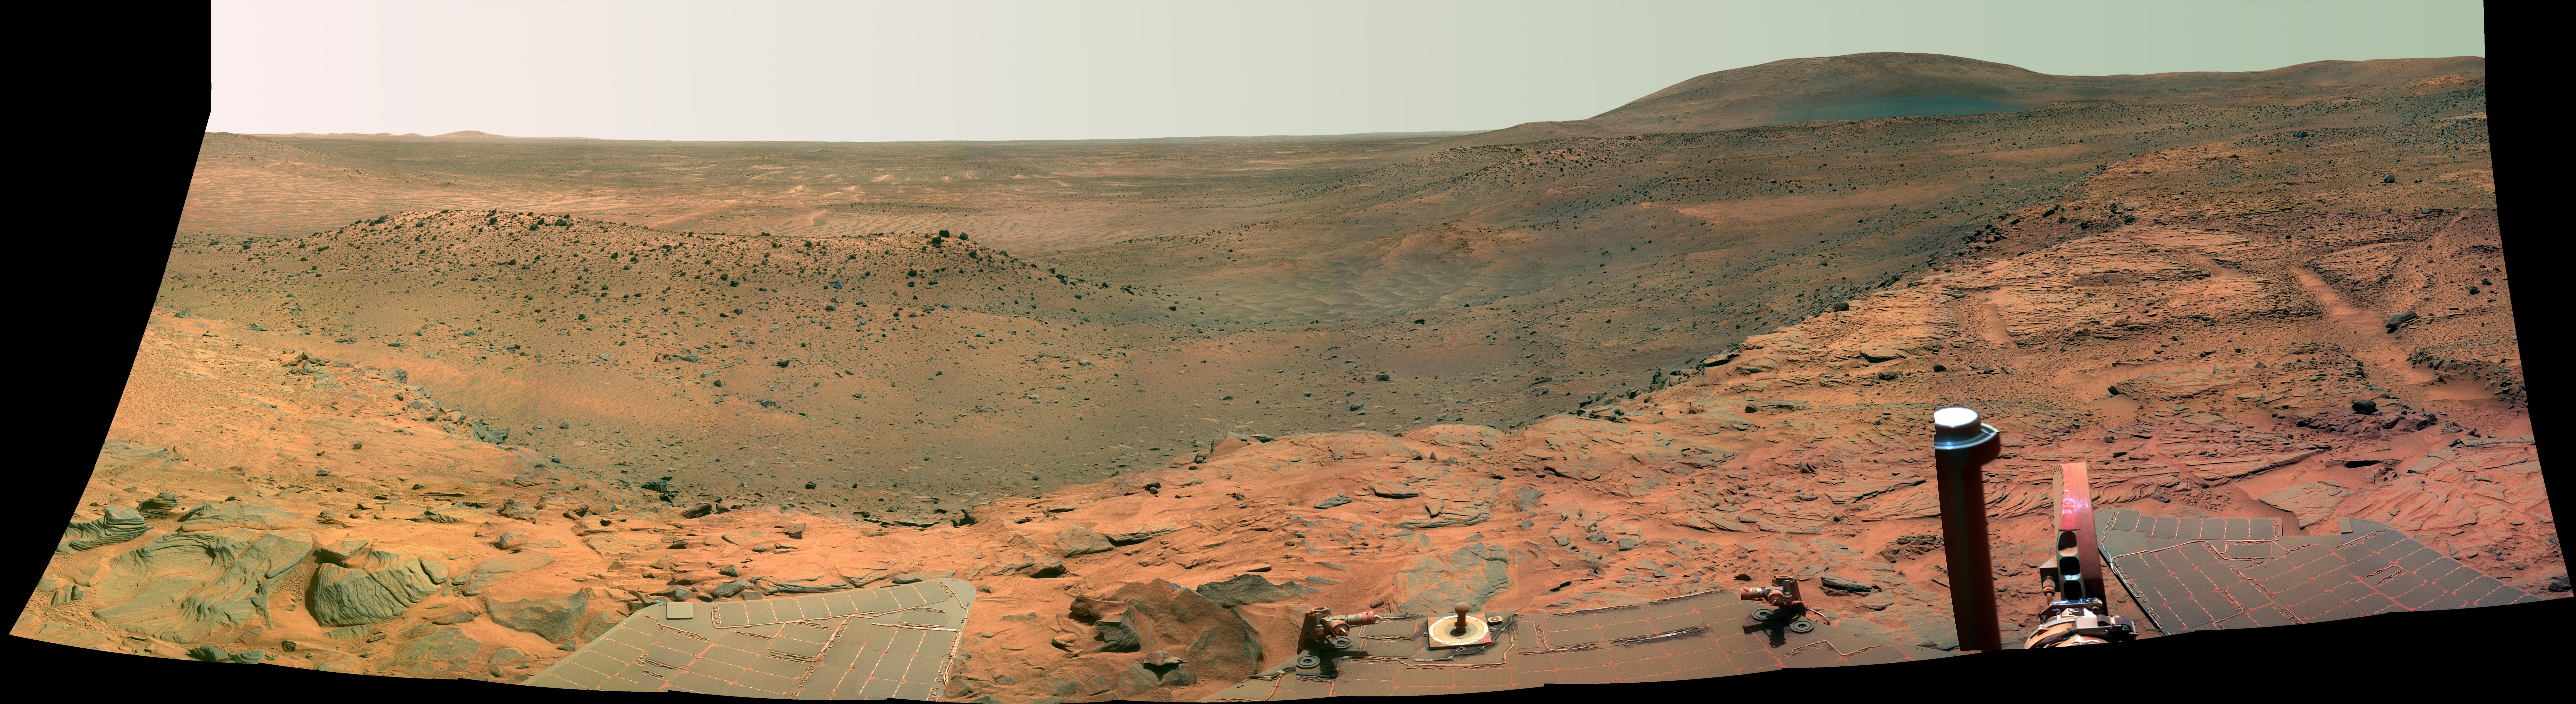 Nasa s mars exploration rover spirit captured this westward view from atop a low plateau where it spent the closing months of 2007